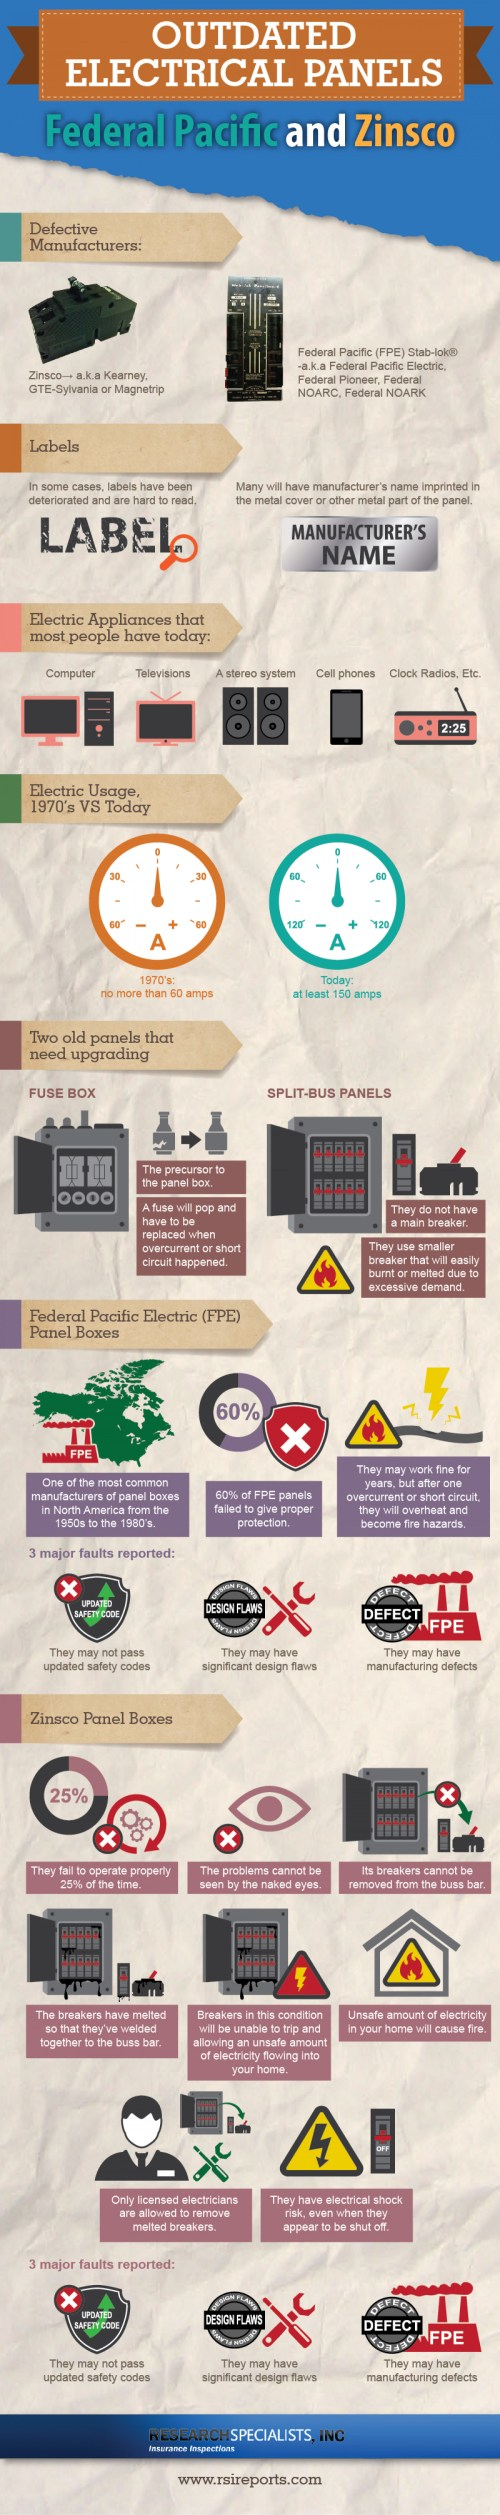 small resolution of outdated electrical panels infographic